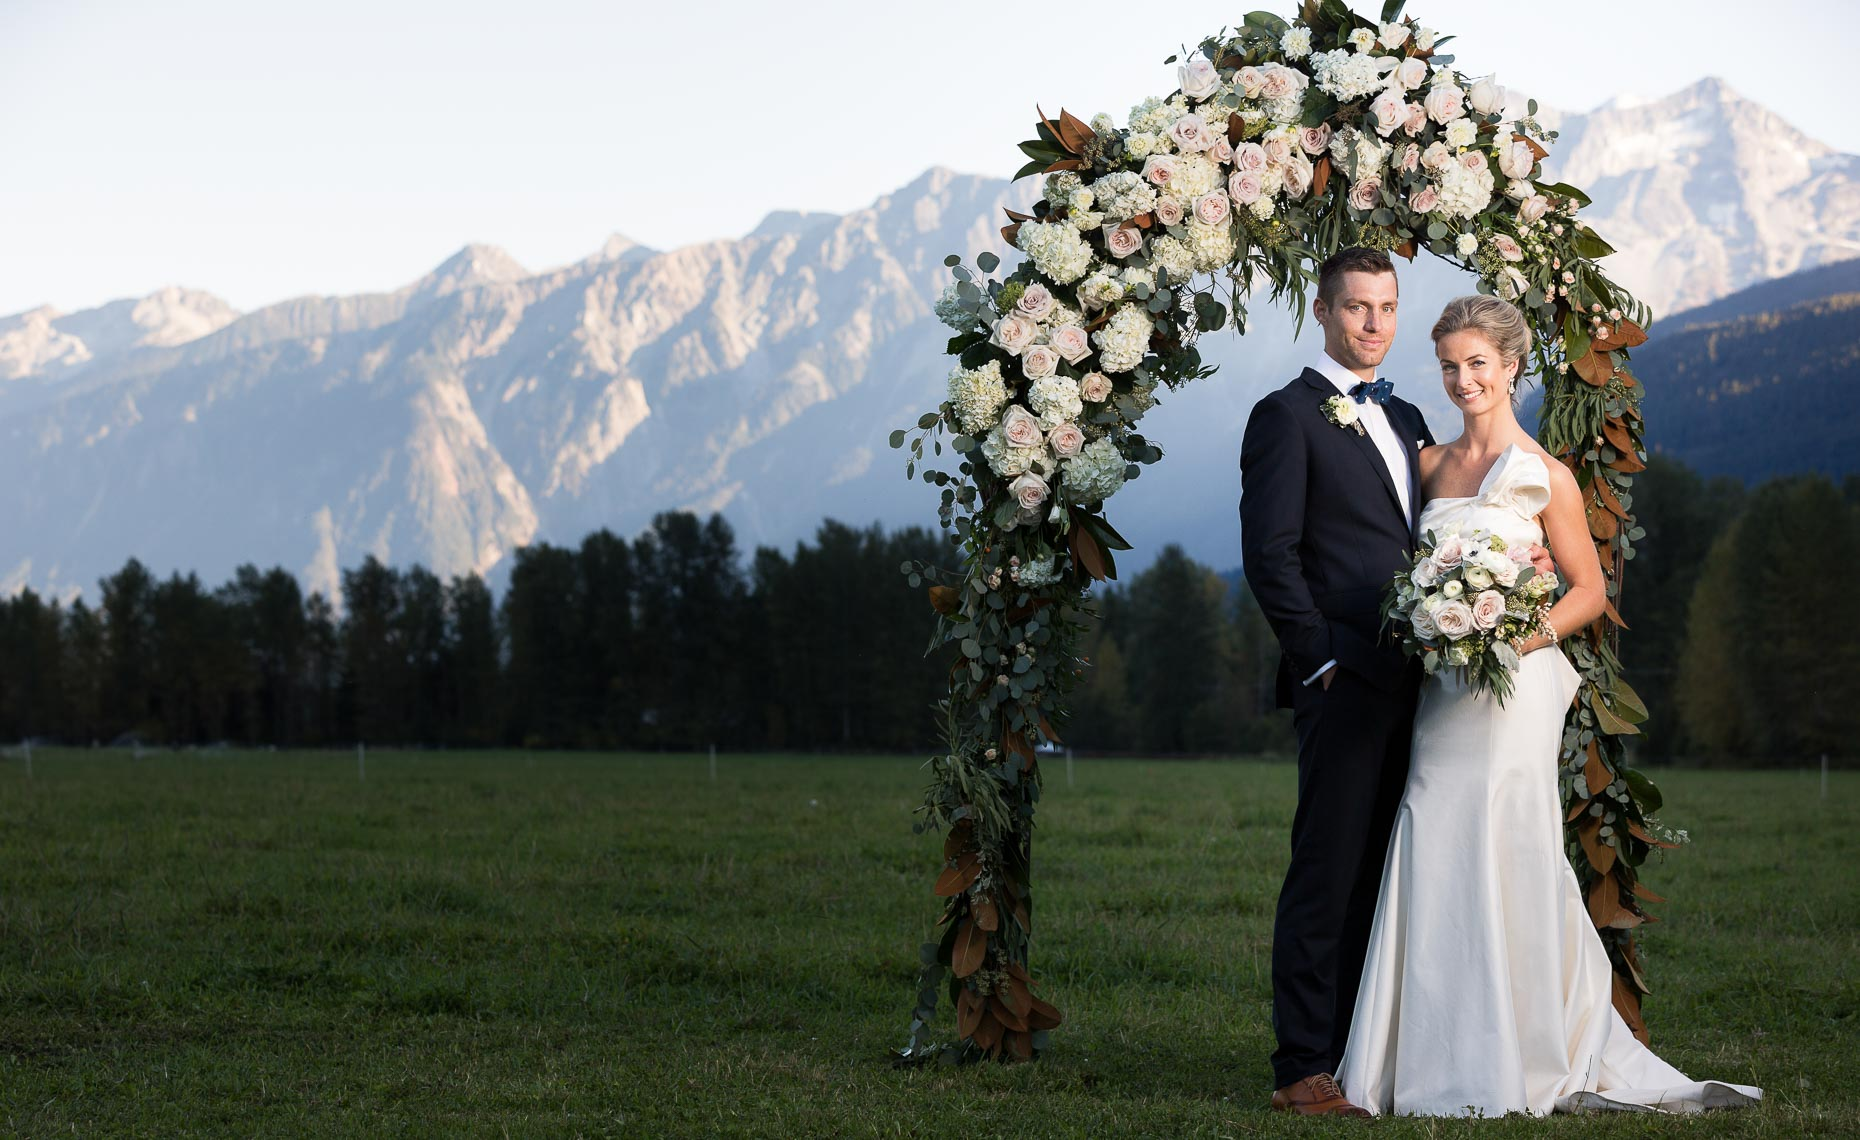 Bride and groom under the wedding archway in front of mountains in pemberton